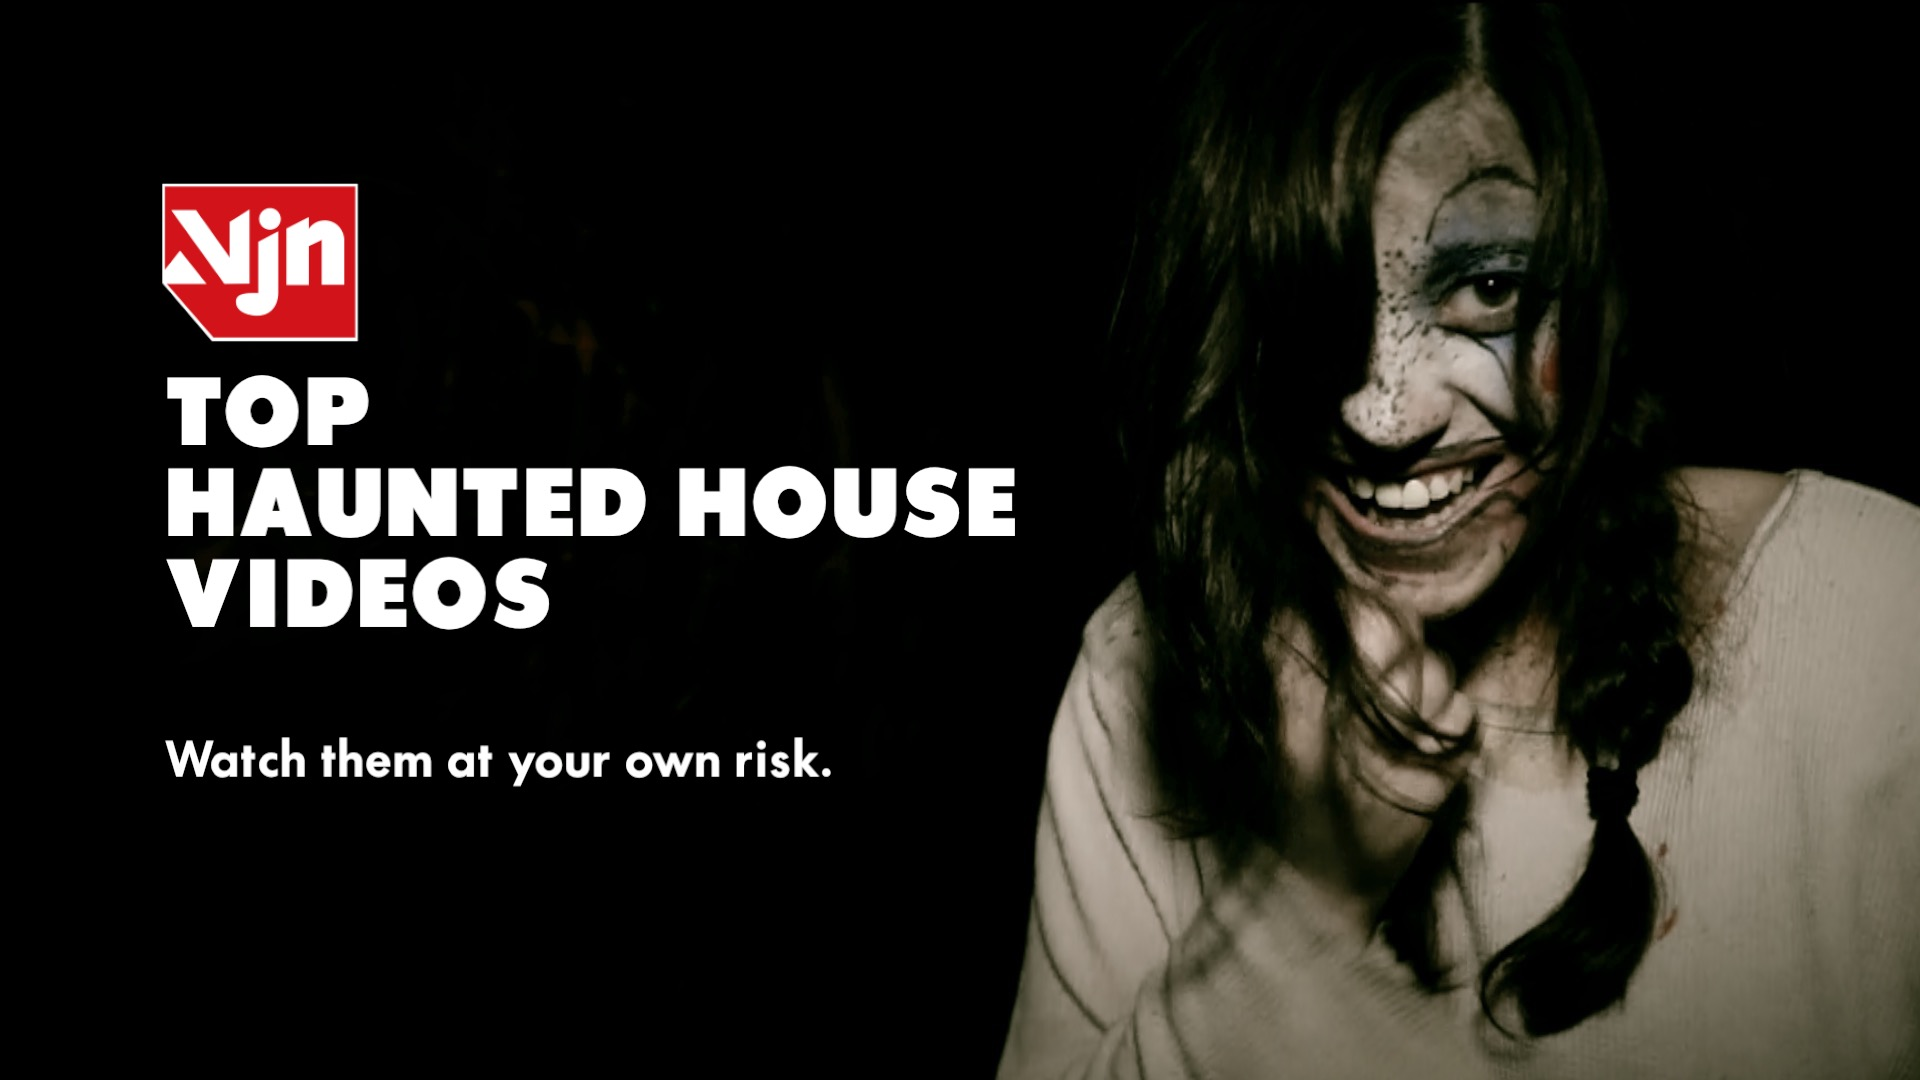 Top Haunted House Videos